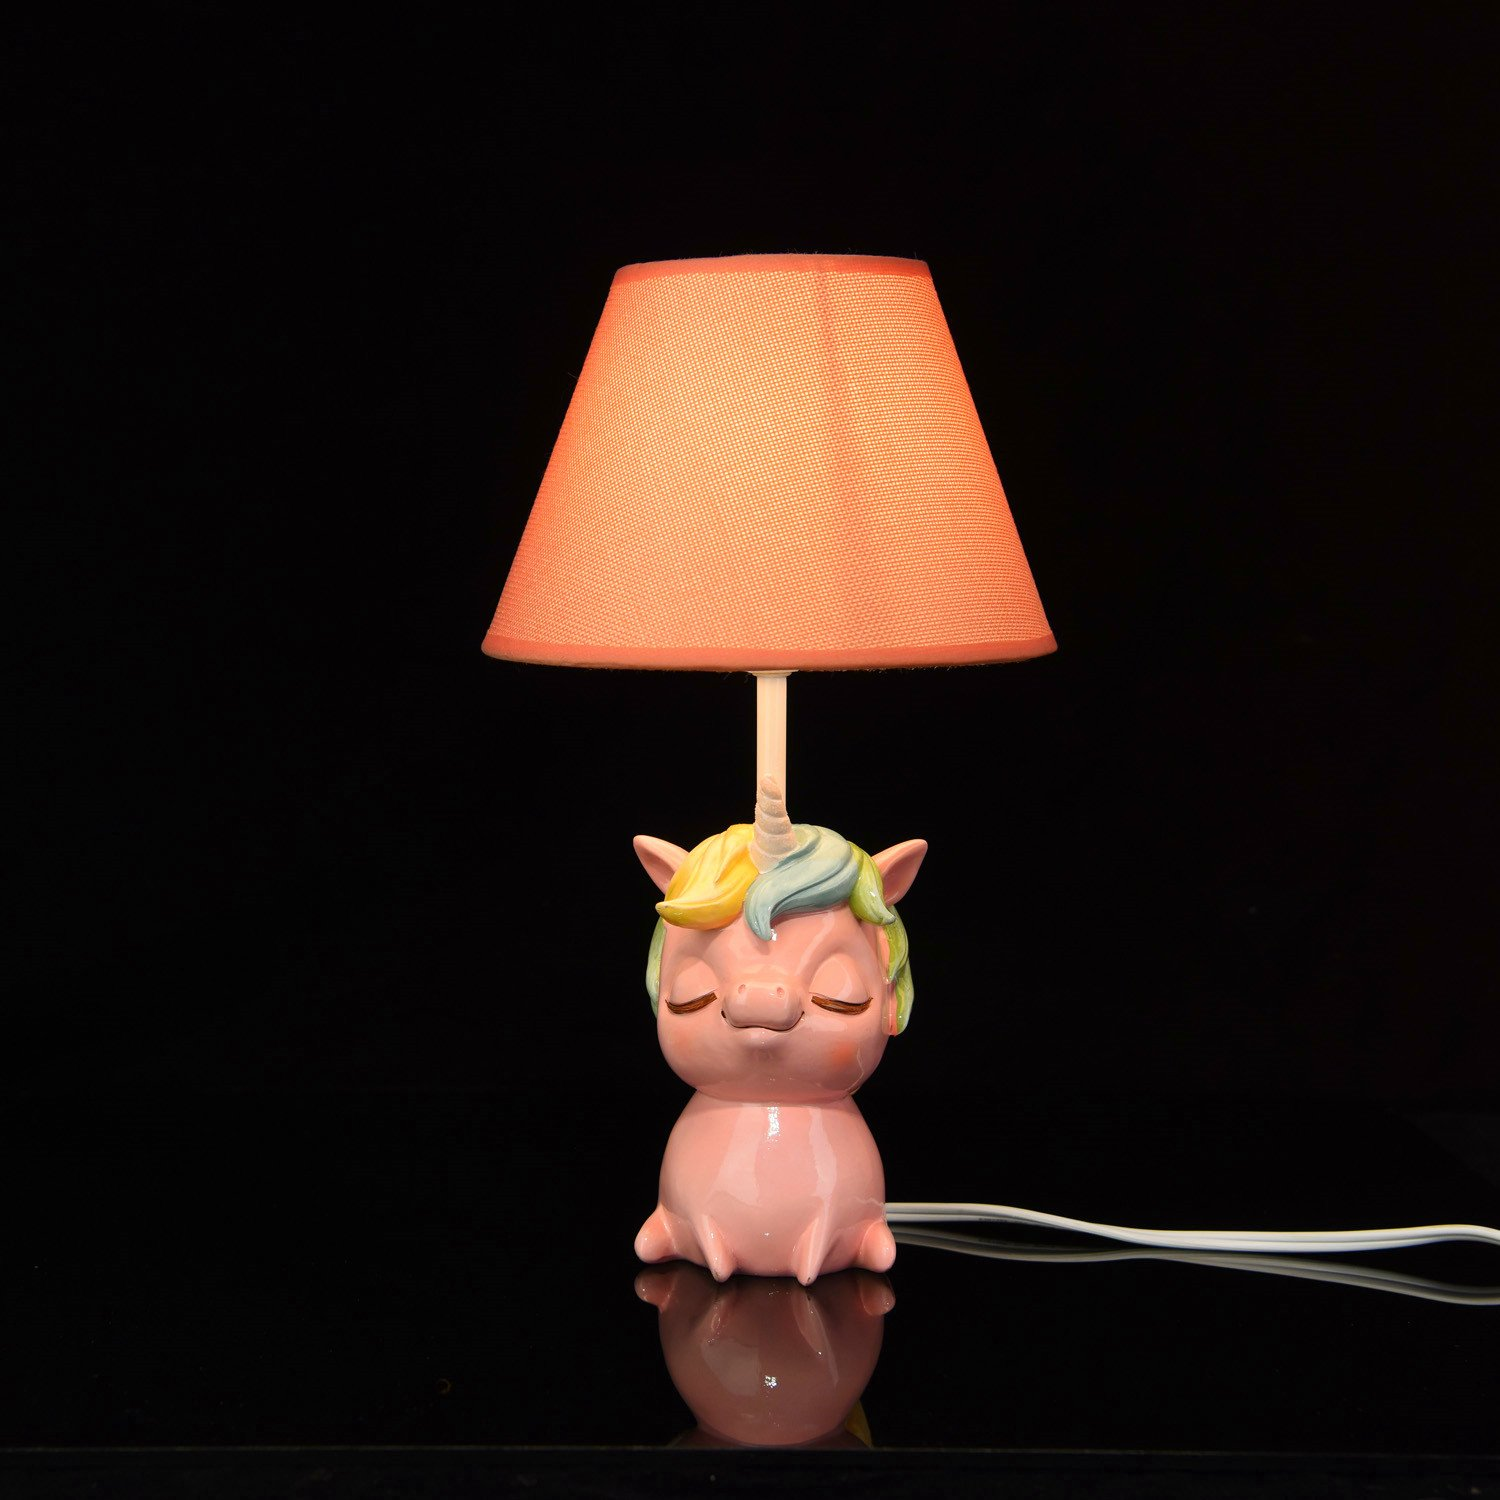 Amazlab 43237-2 Unicorn Table Lamps with Pink Shade Cute Bedroom, Bedside Kids Room Decoration, Gifts for Boys Or Girls Stick UL Listed, 13.57.77.7 inch